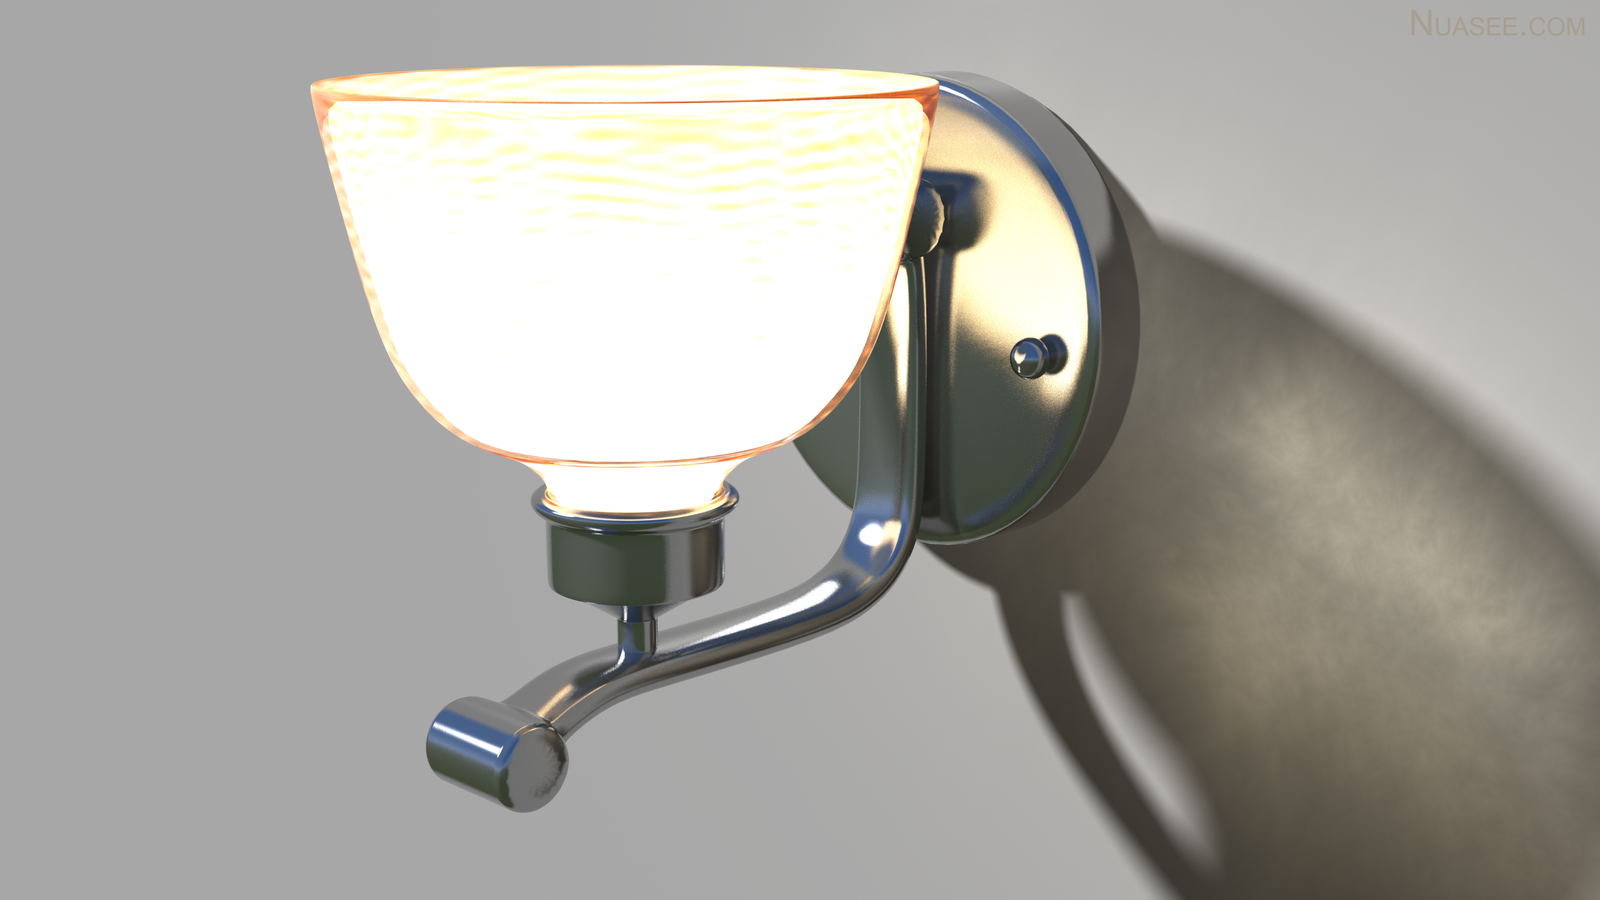 Image Result For Wall Mounted Light